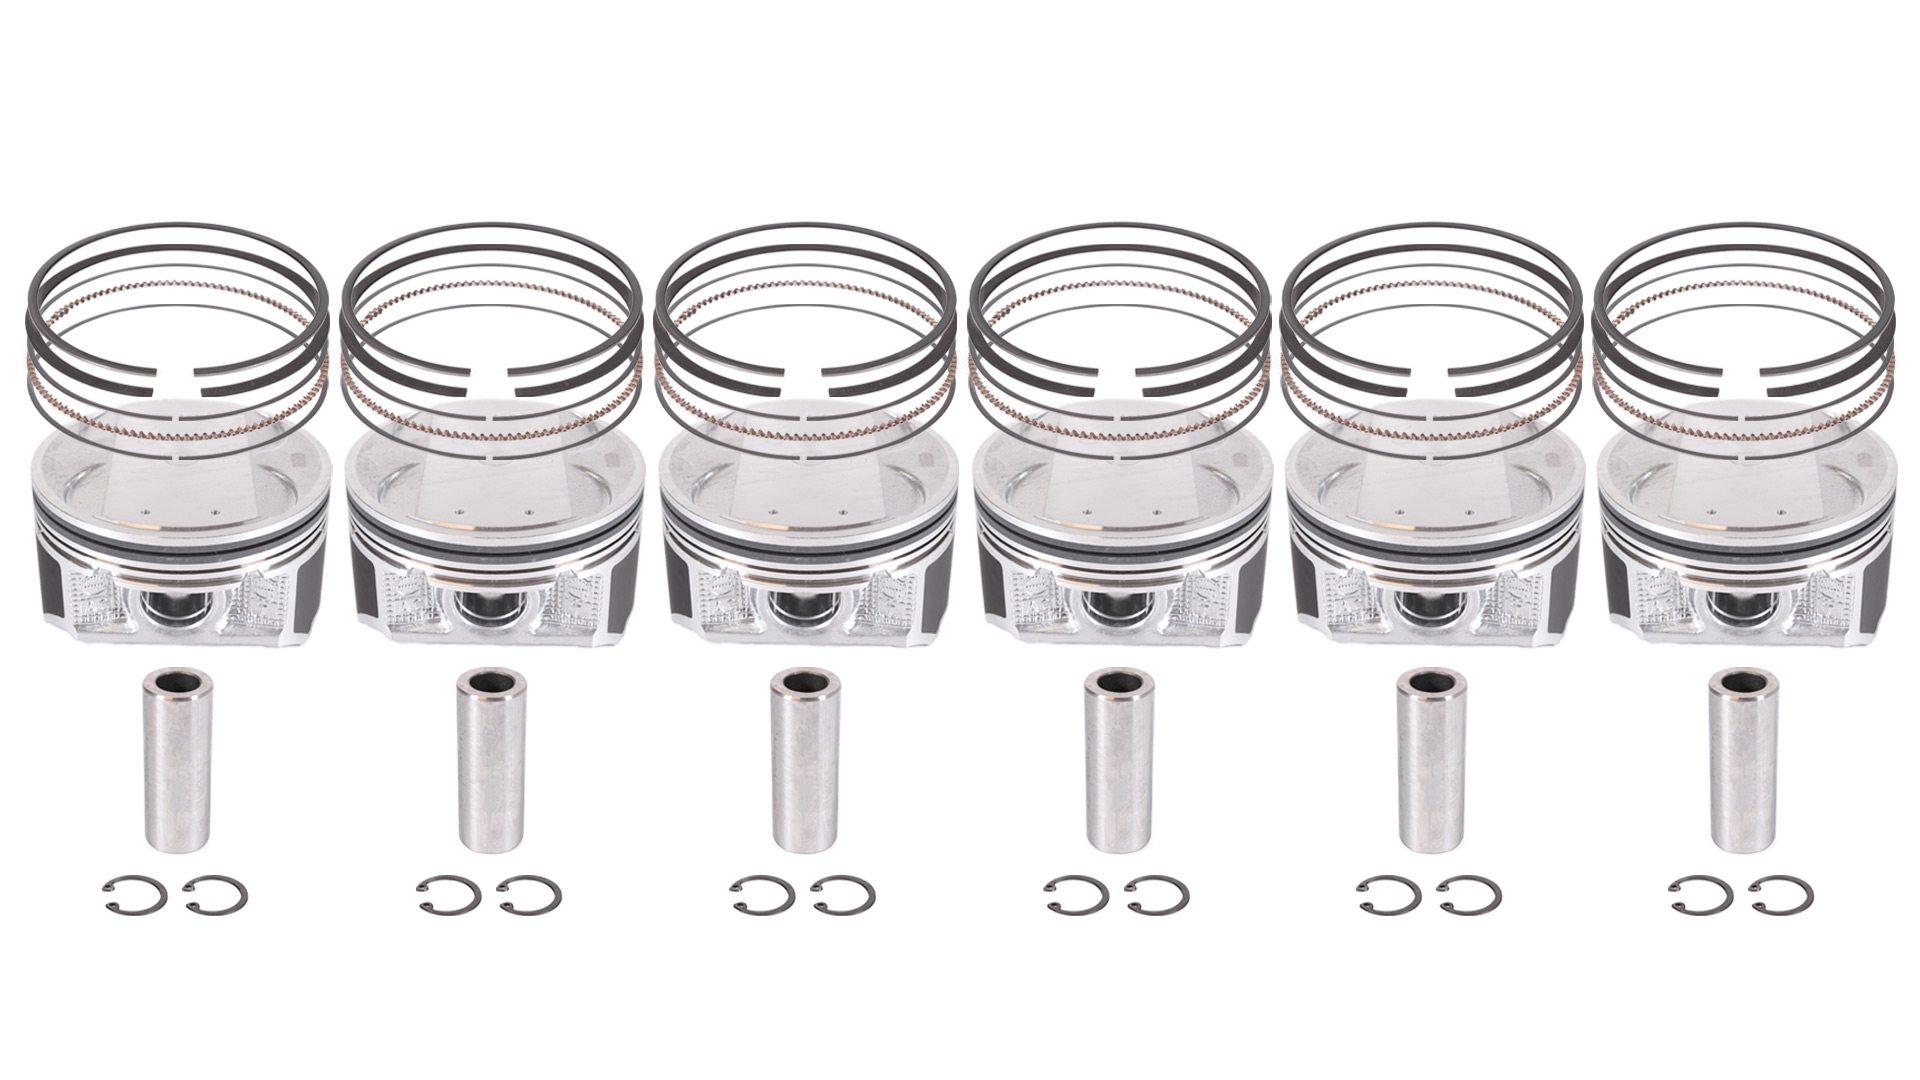 Piston set 6x Piston Nissan Infiniti Z50 FX 35 for 3.5 VQ35DE VQ35 NEW DE244163